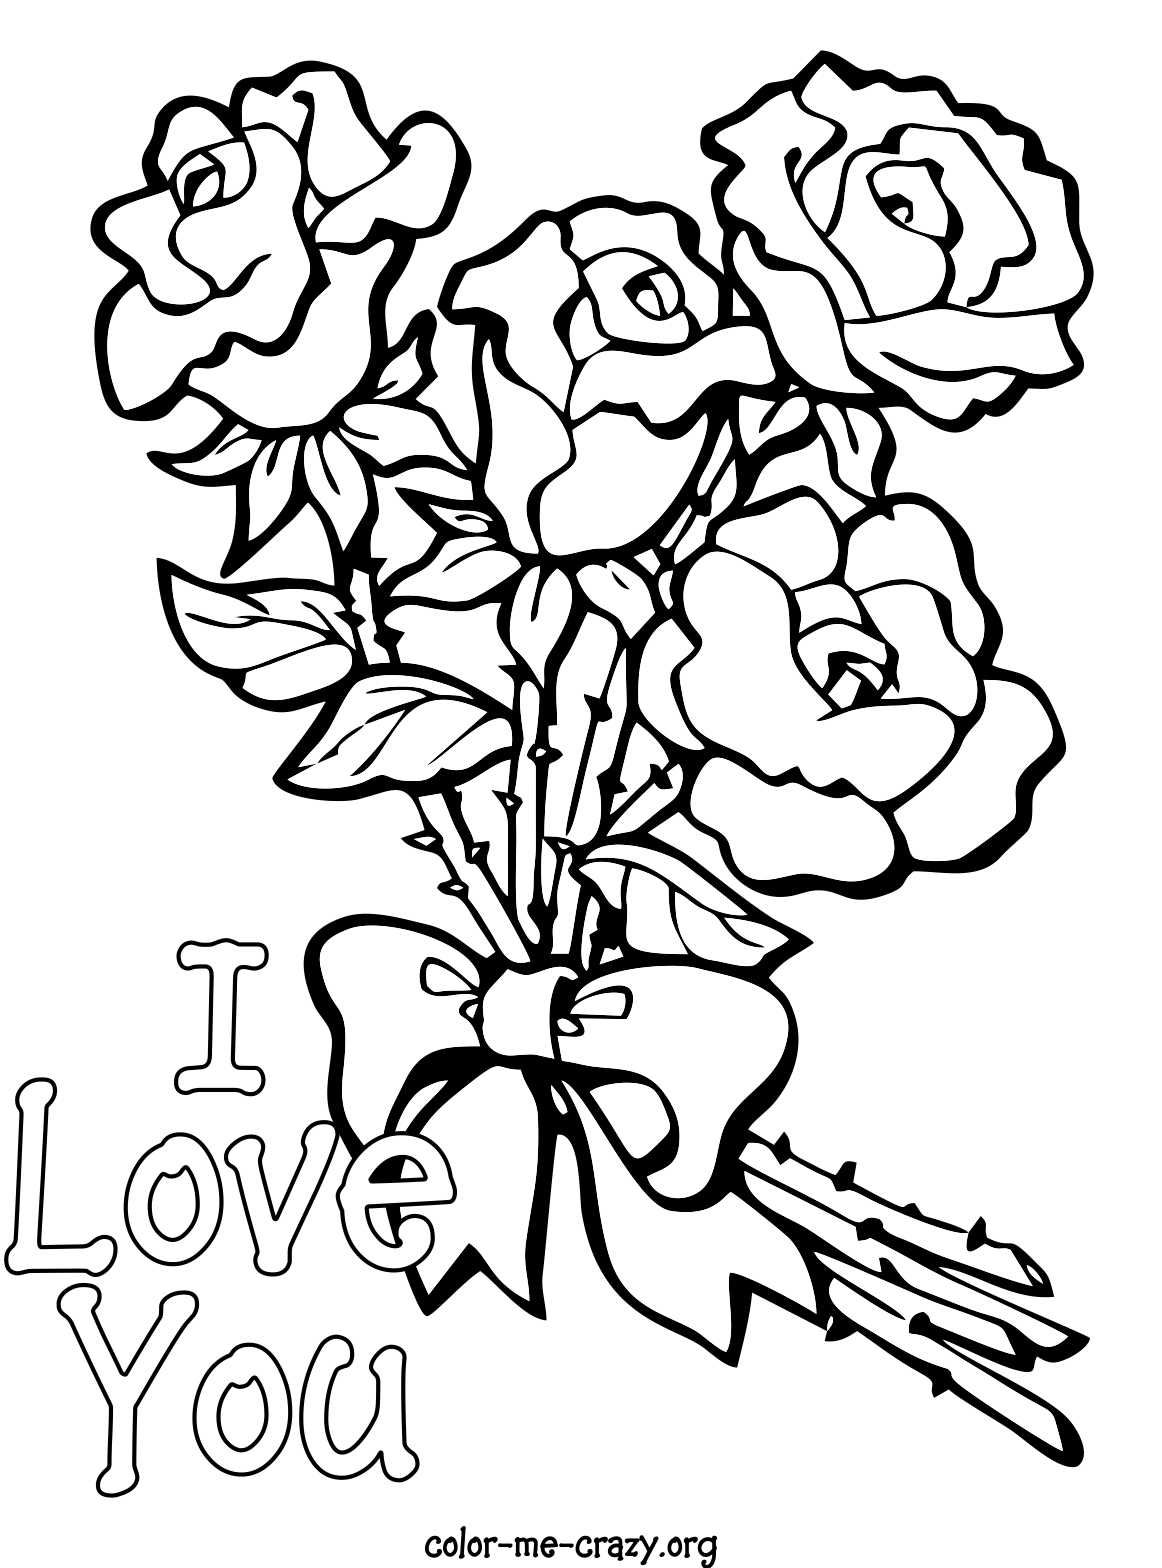 Coloring pages for boyfriend - Image Detail For Colormecrazy Org Valentine Coloring Pages